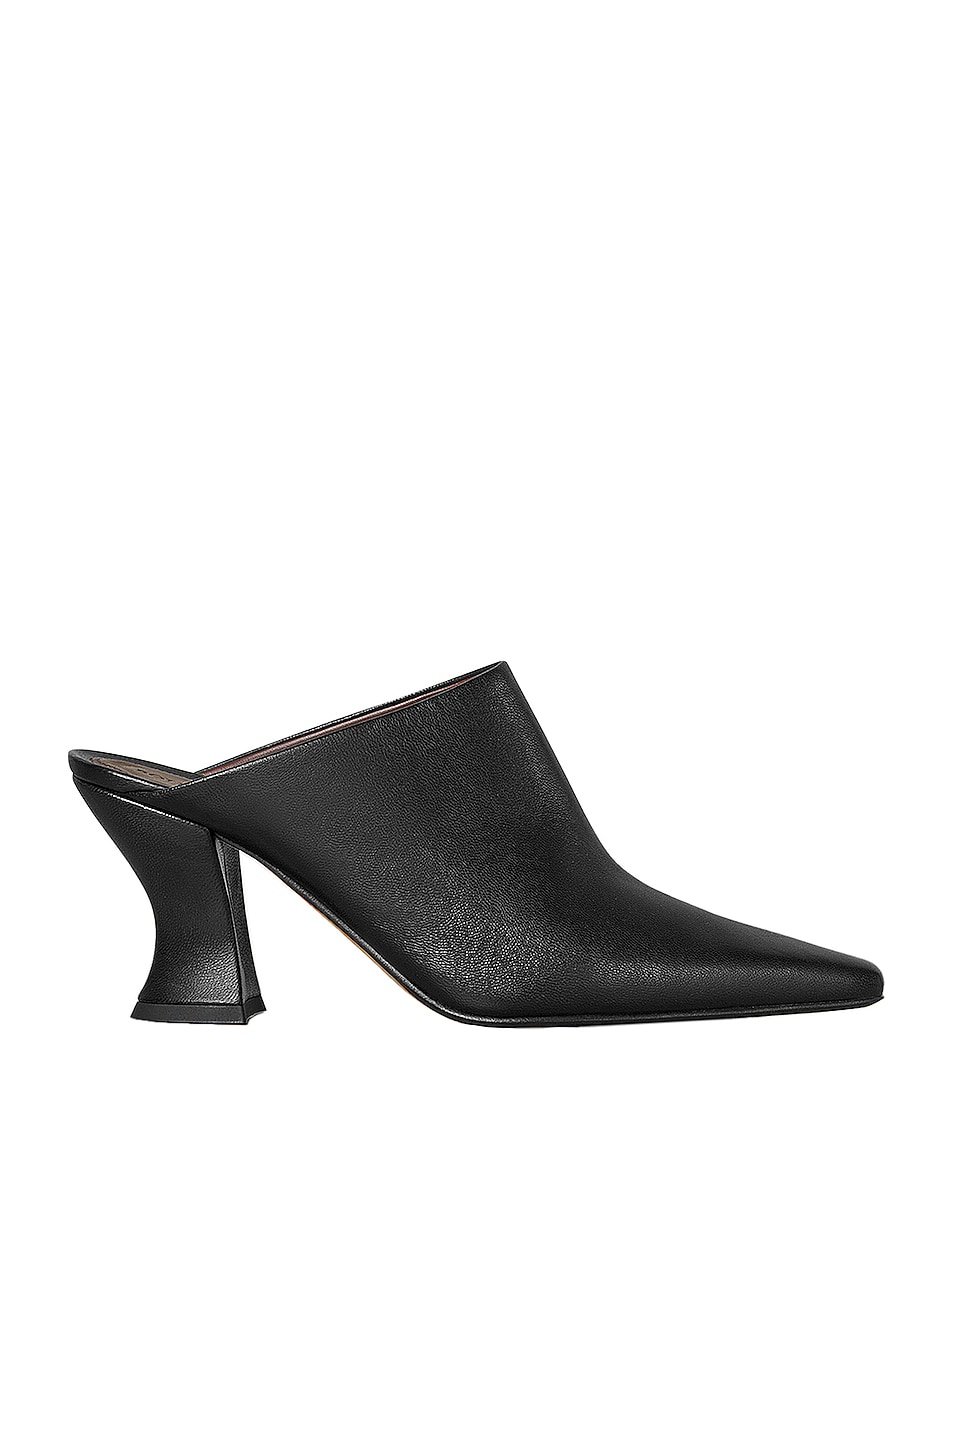 Image 1 of Bottega Veneta Leather Pointed Toe Mules in Black